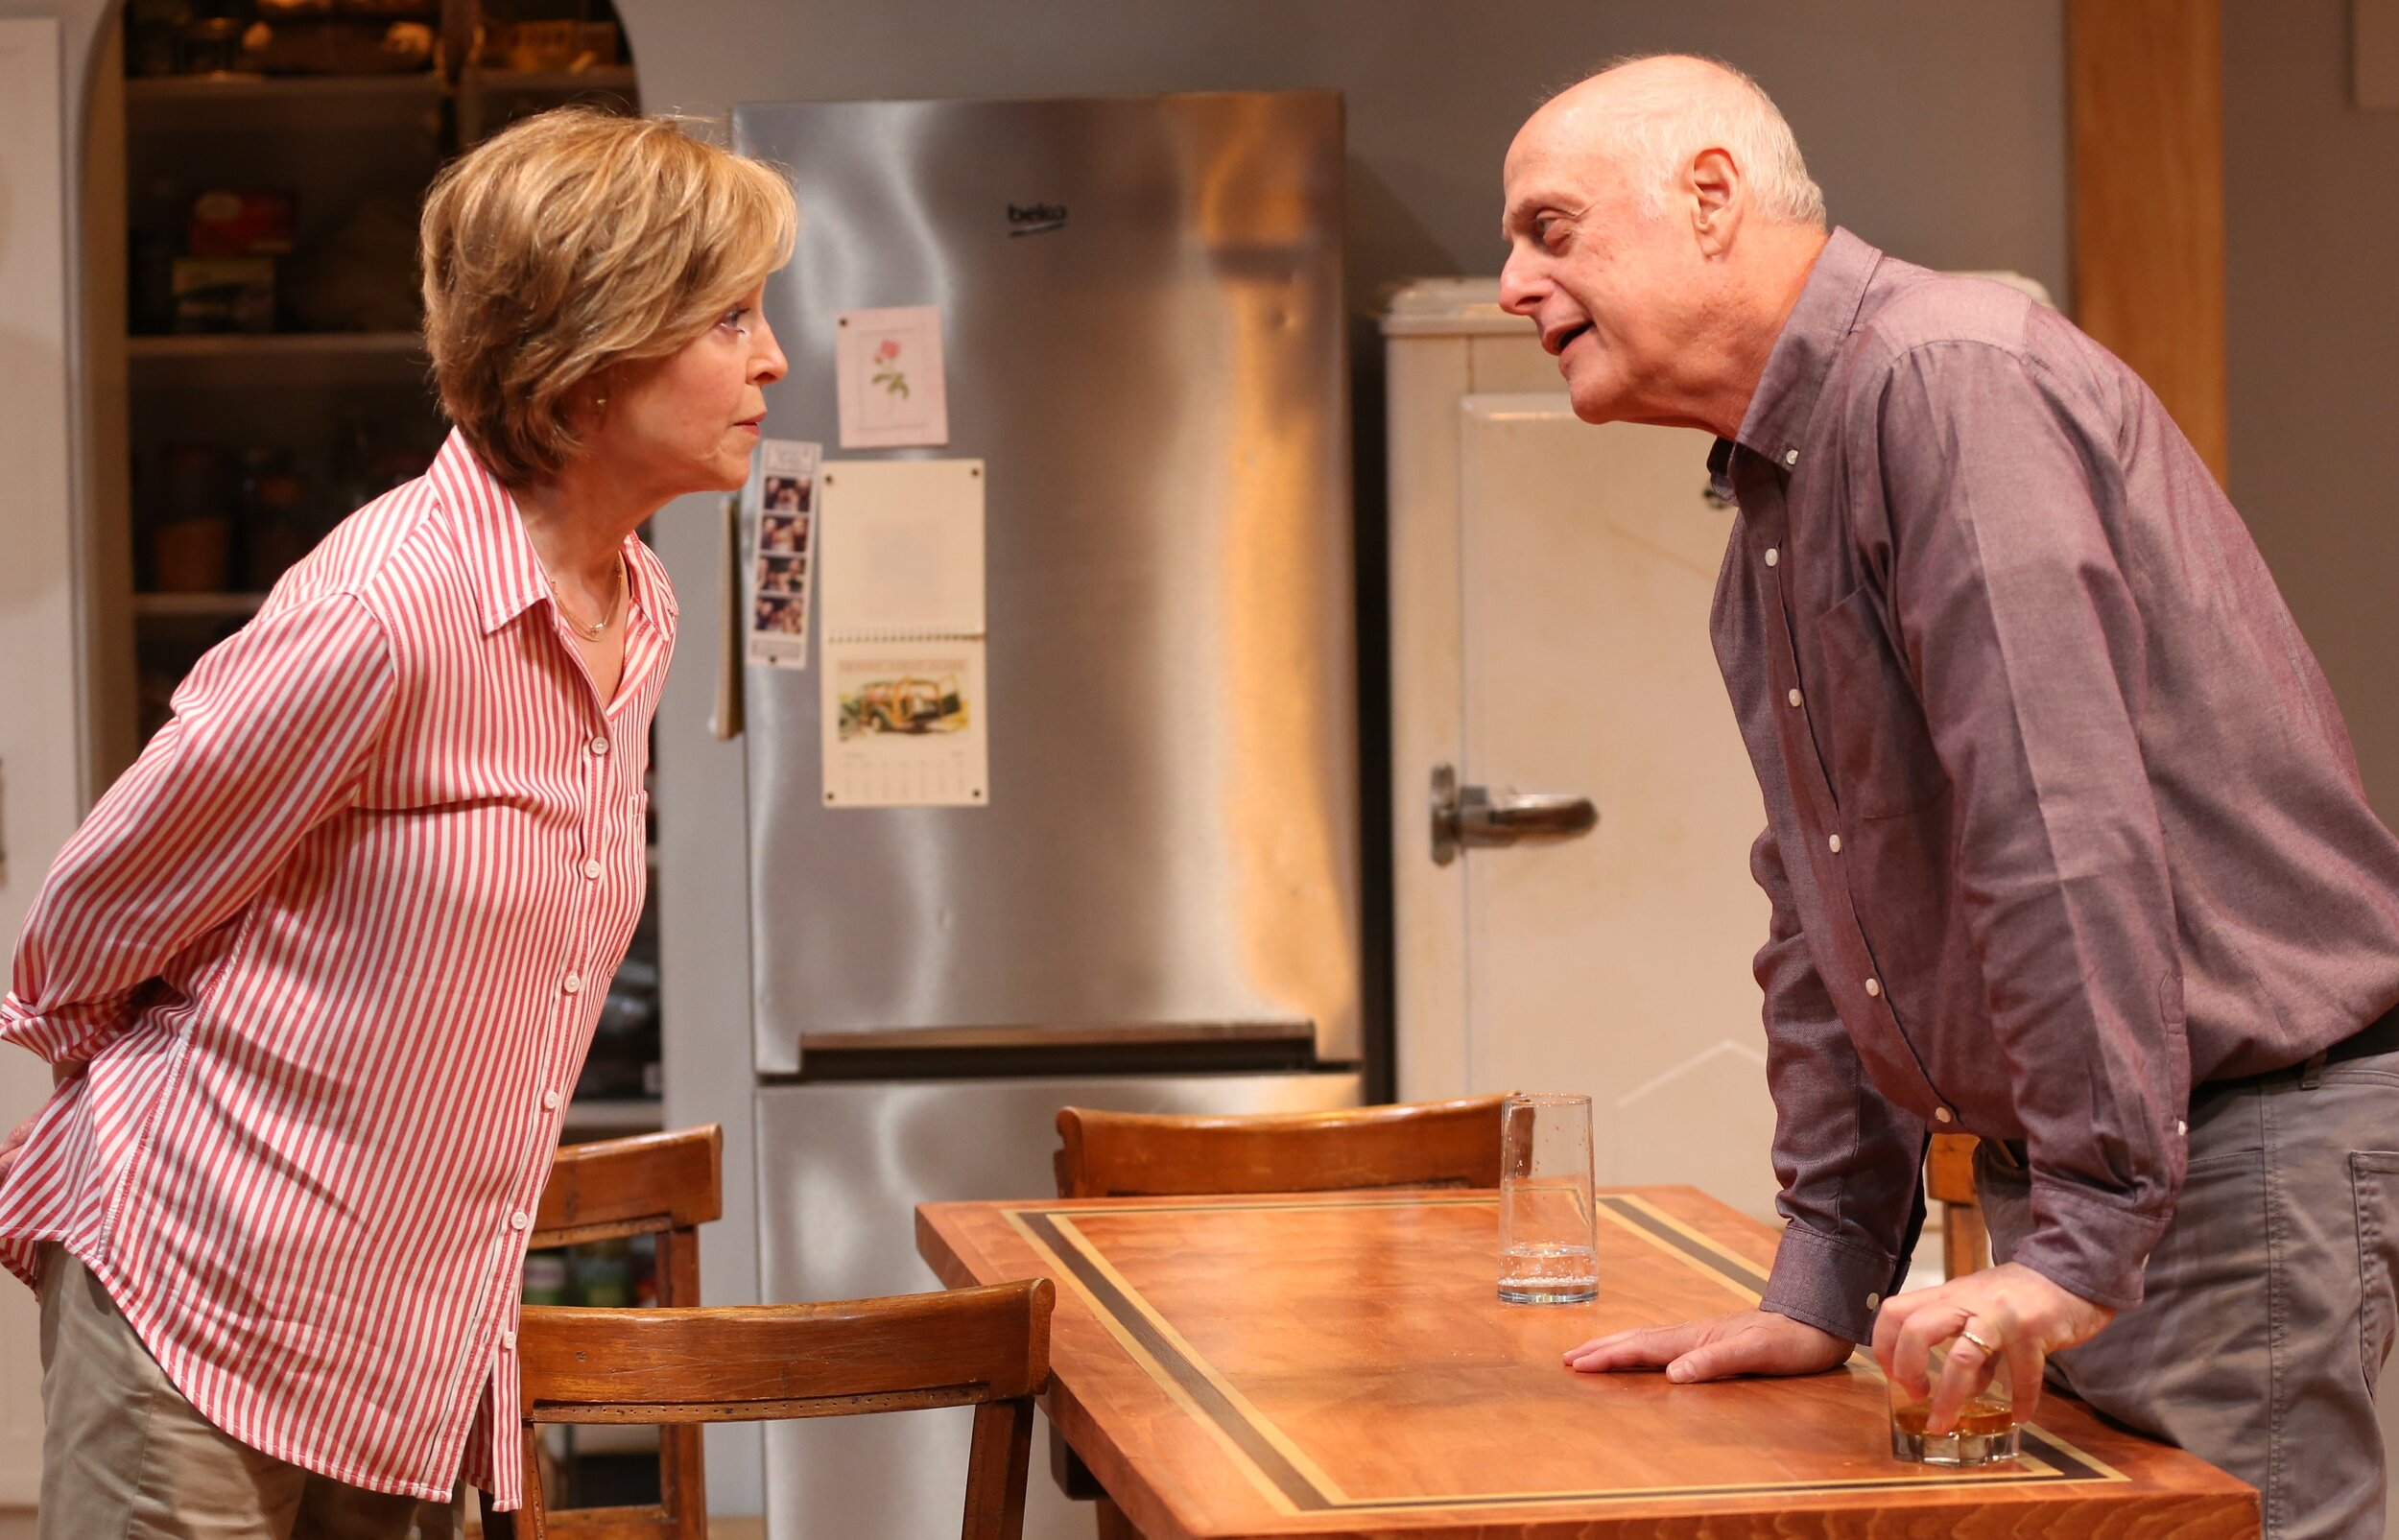 Sunny and Jer (Mark Blum) seek common ground. Photographs by Carol Rosegg.